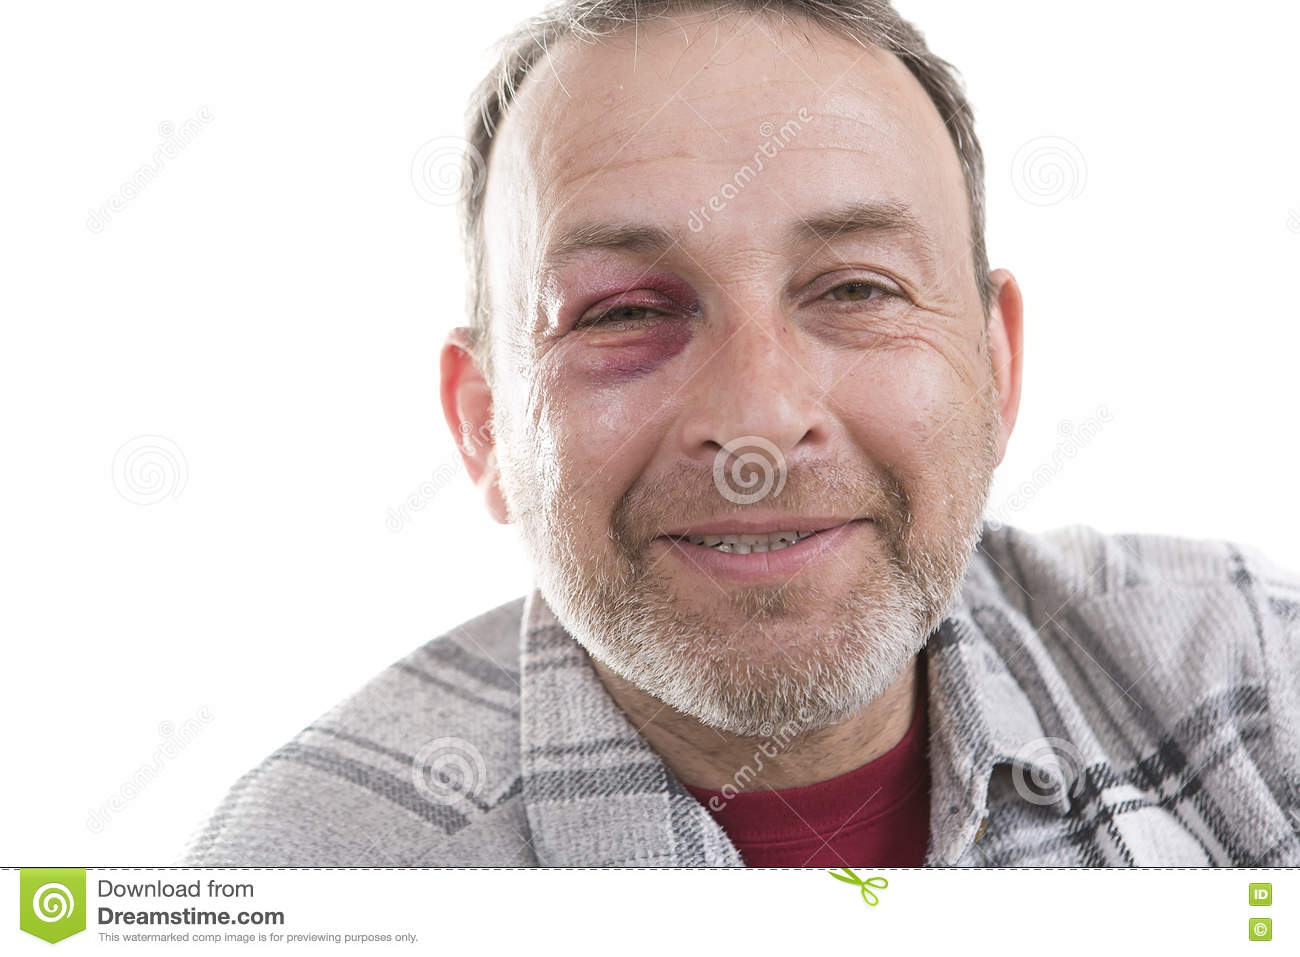 Middle-aged Caucasian male Emotional Portrait with a Real Bruise